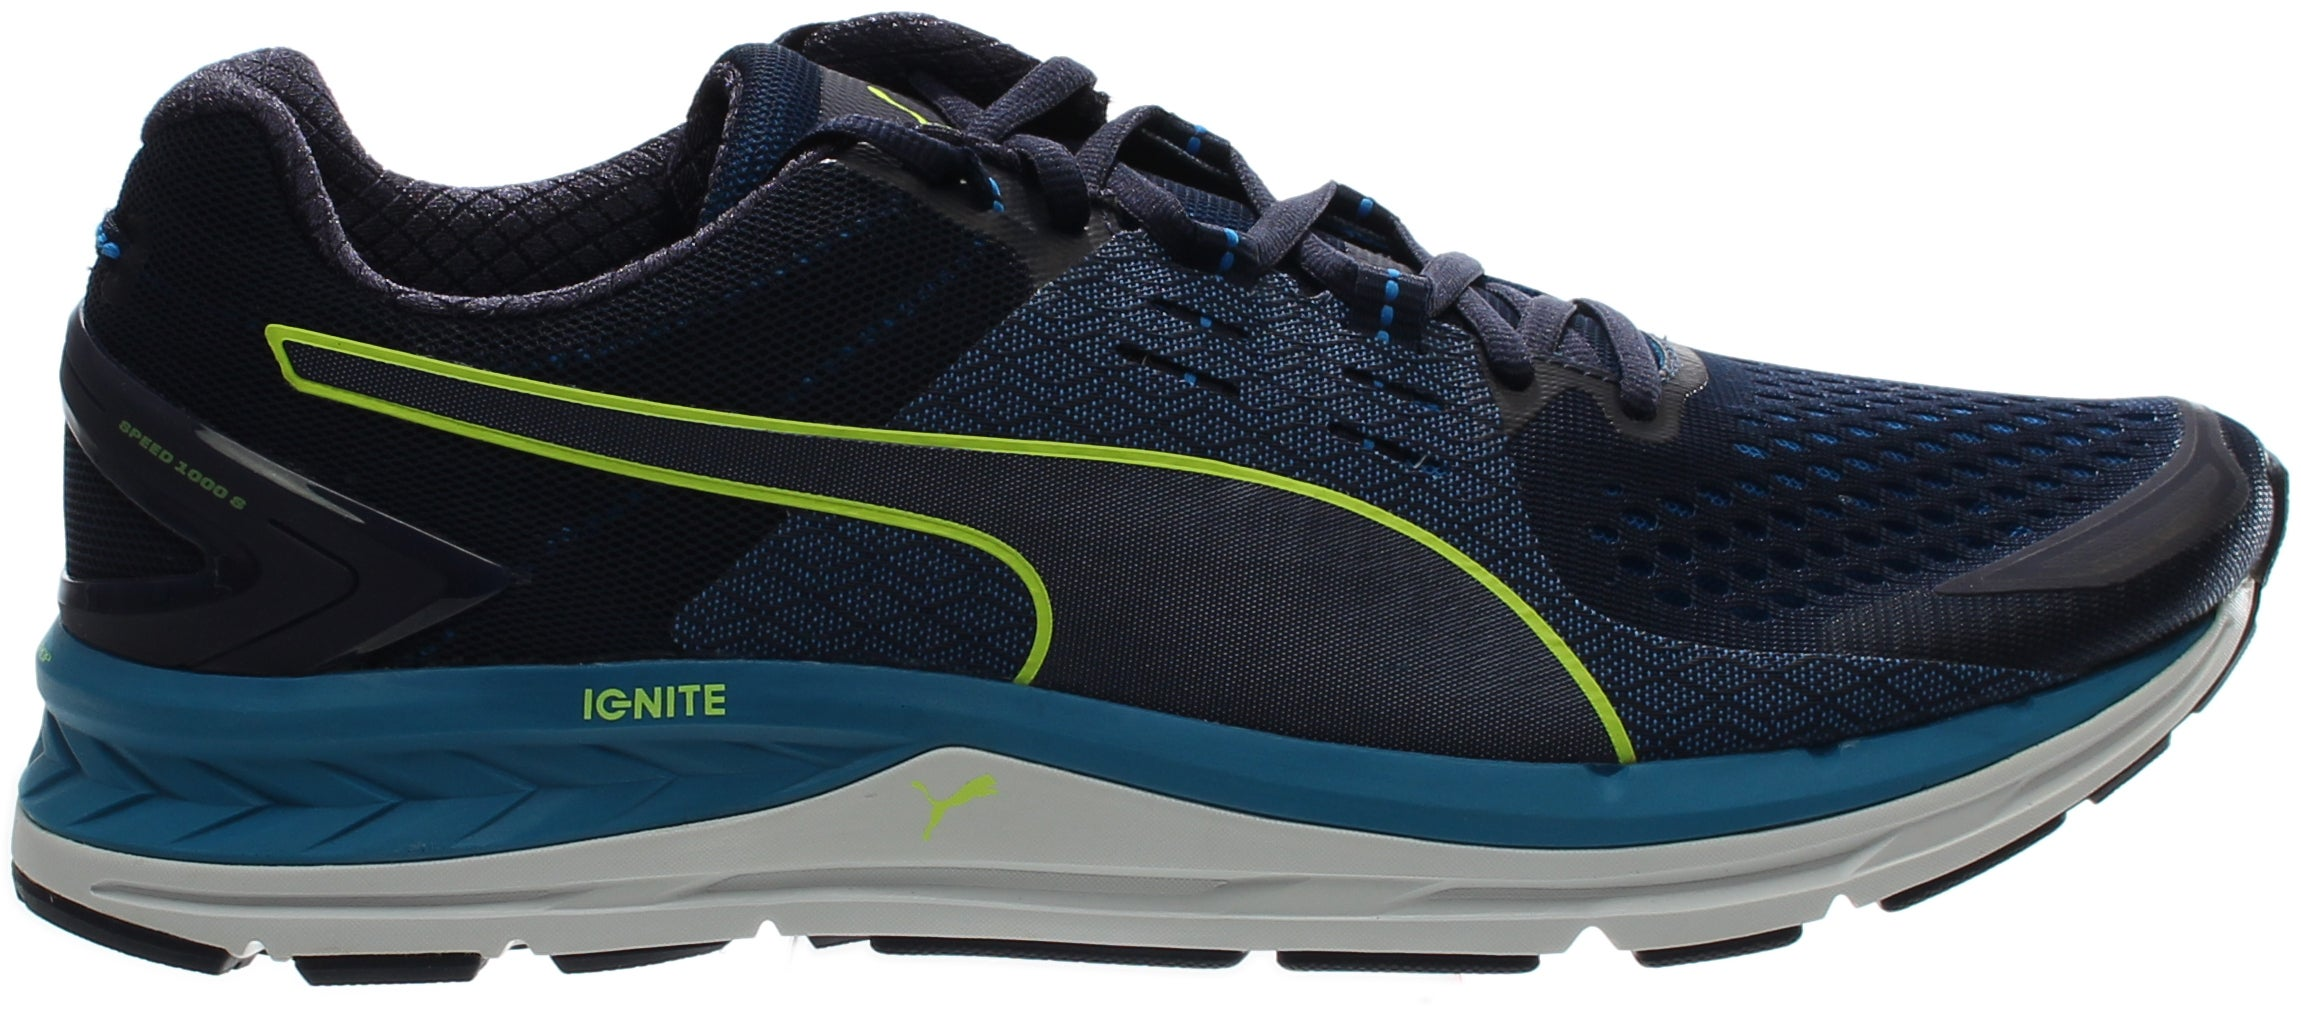 Puma Speed 1000 S IGNITE Running Shoes Blue - Mens  - Size